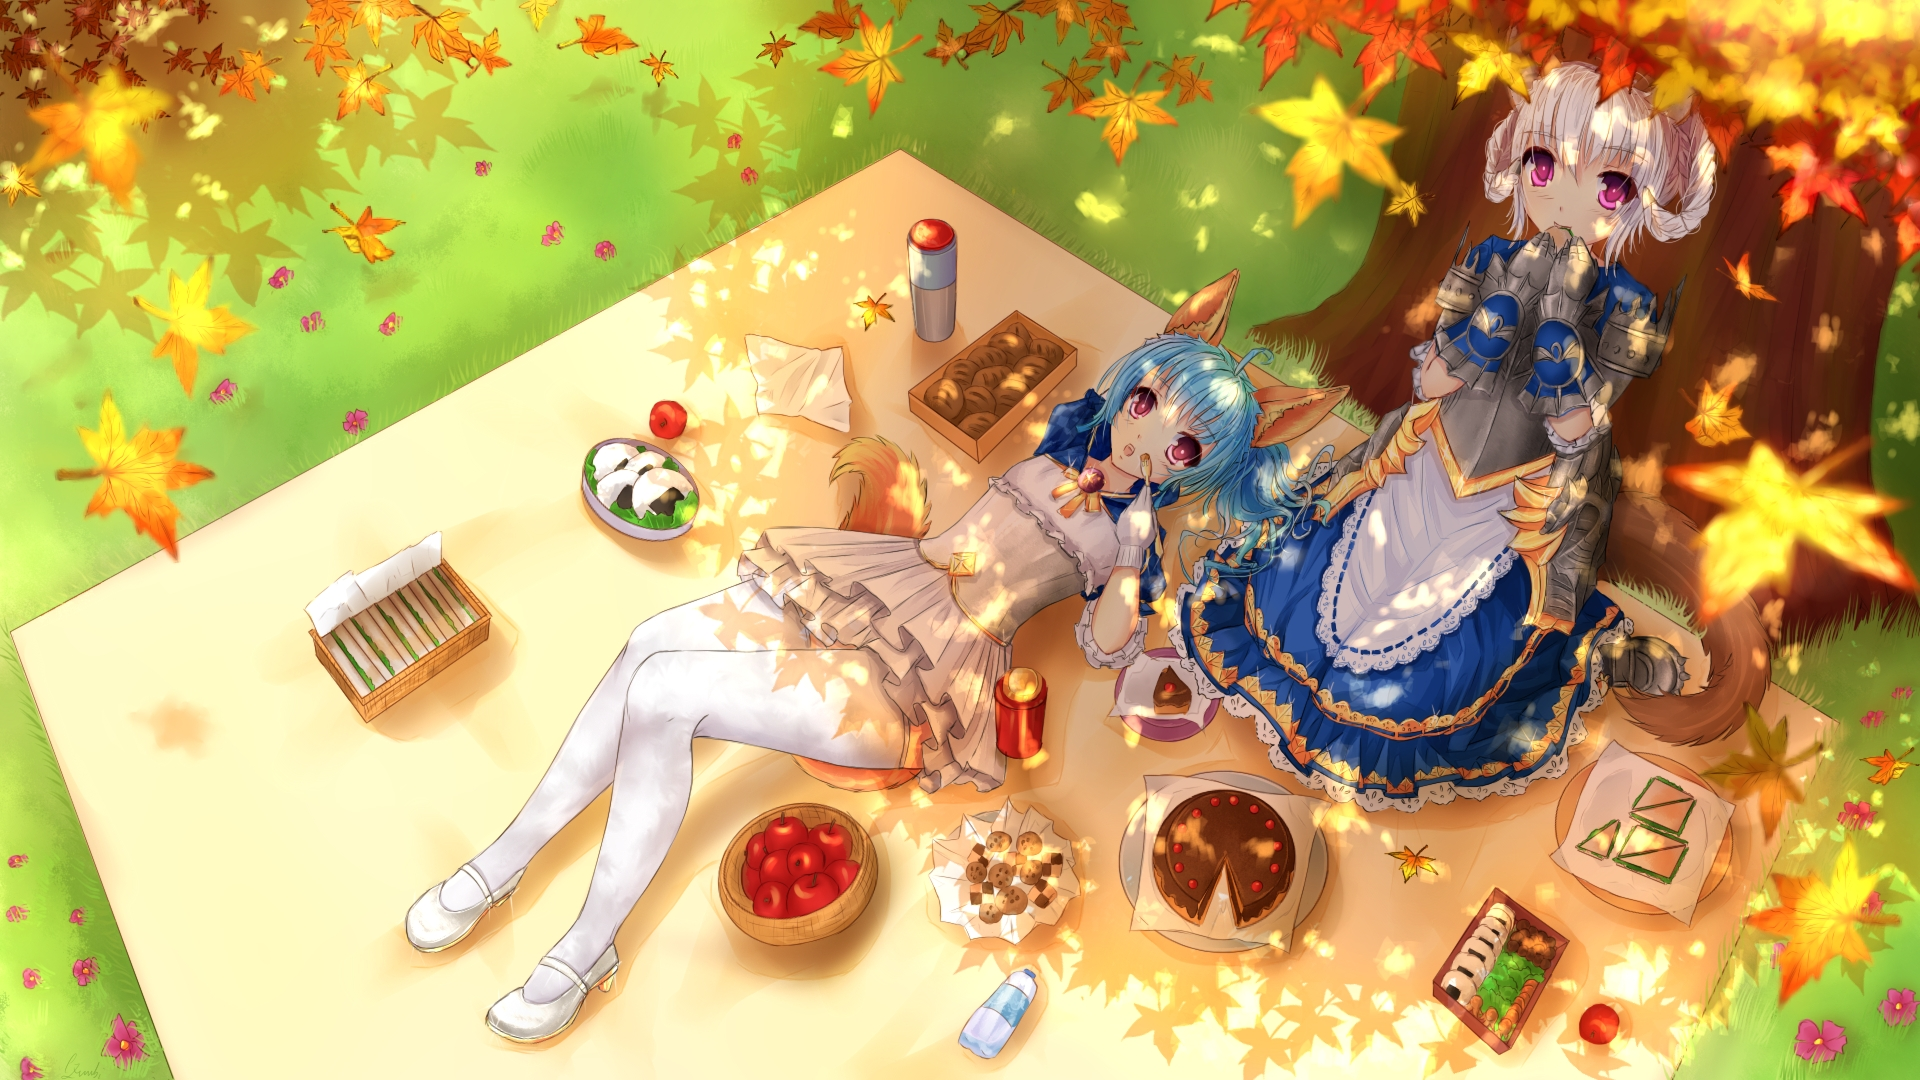 Anime Ximbixill Tera Online Picnic Hd Wallpaper